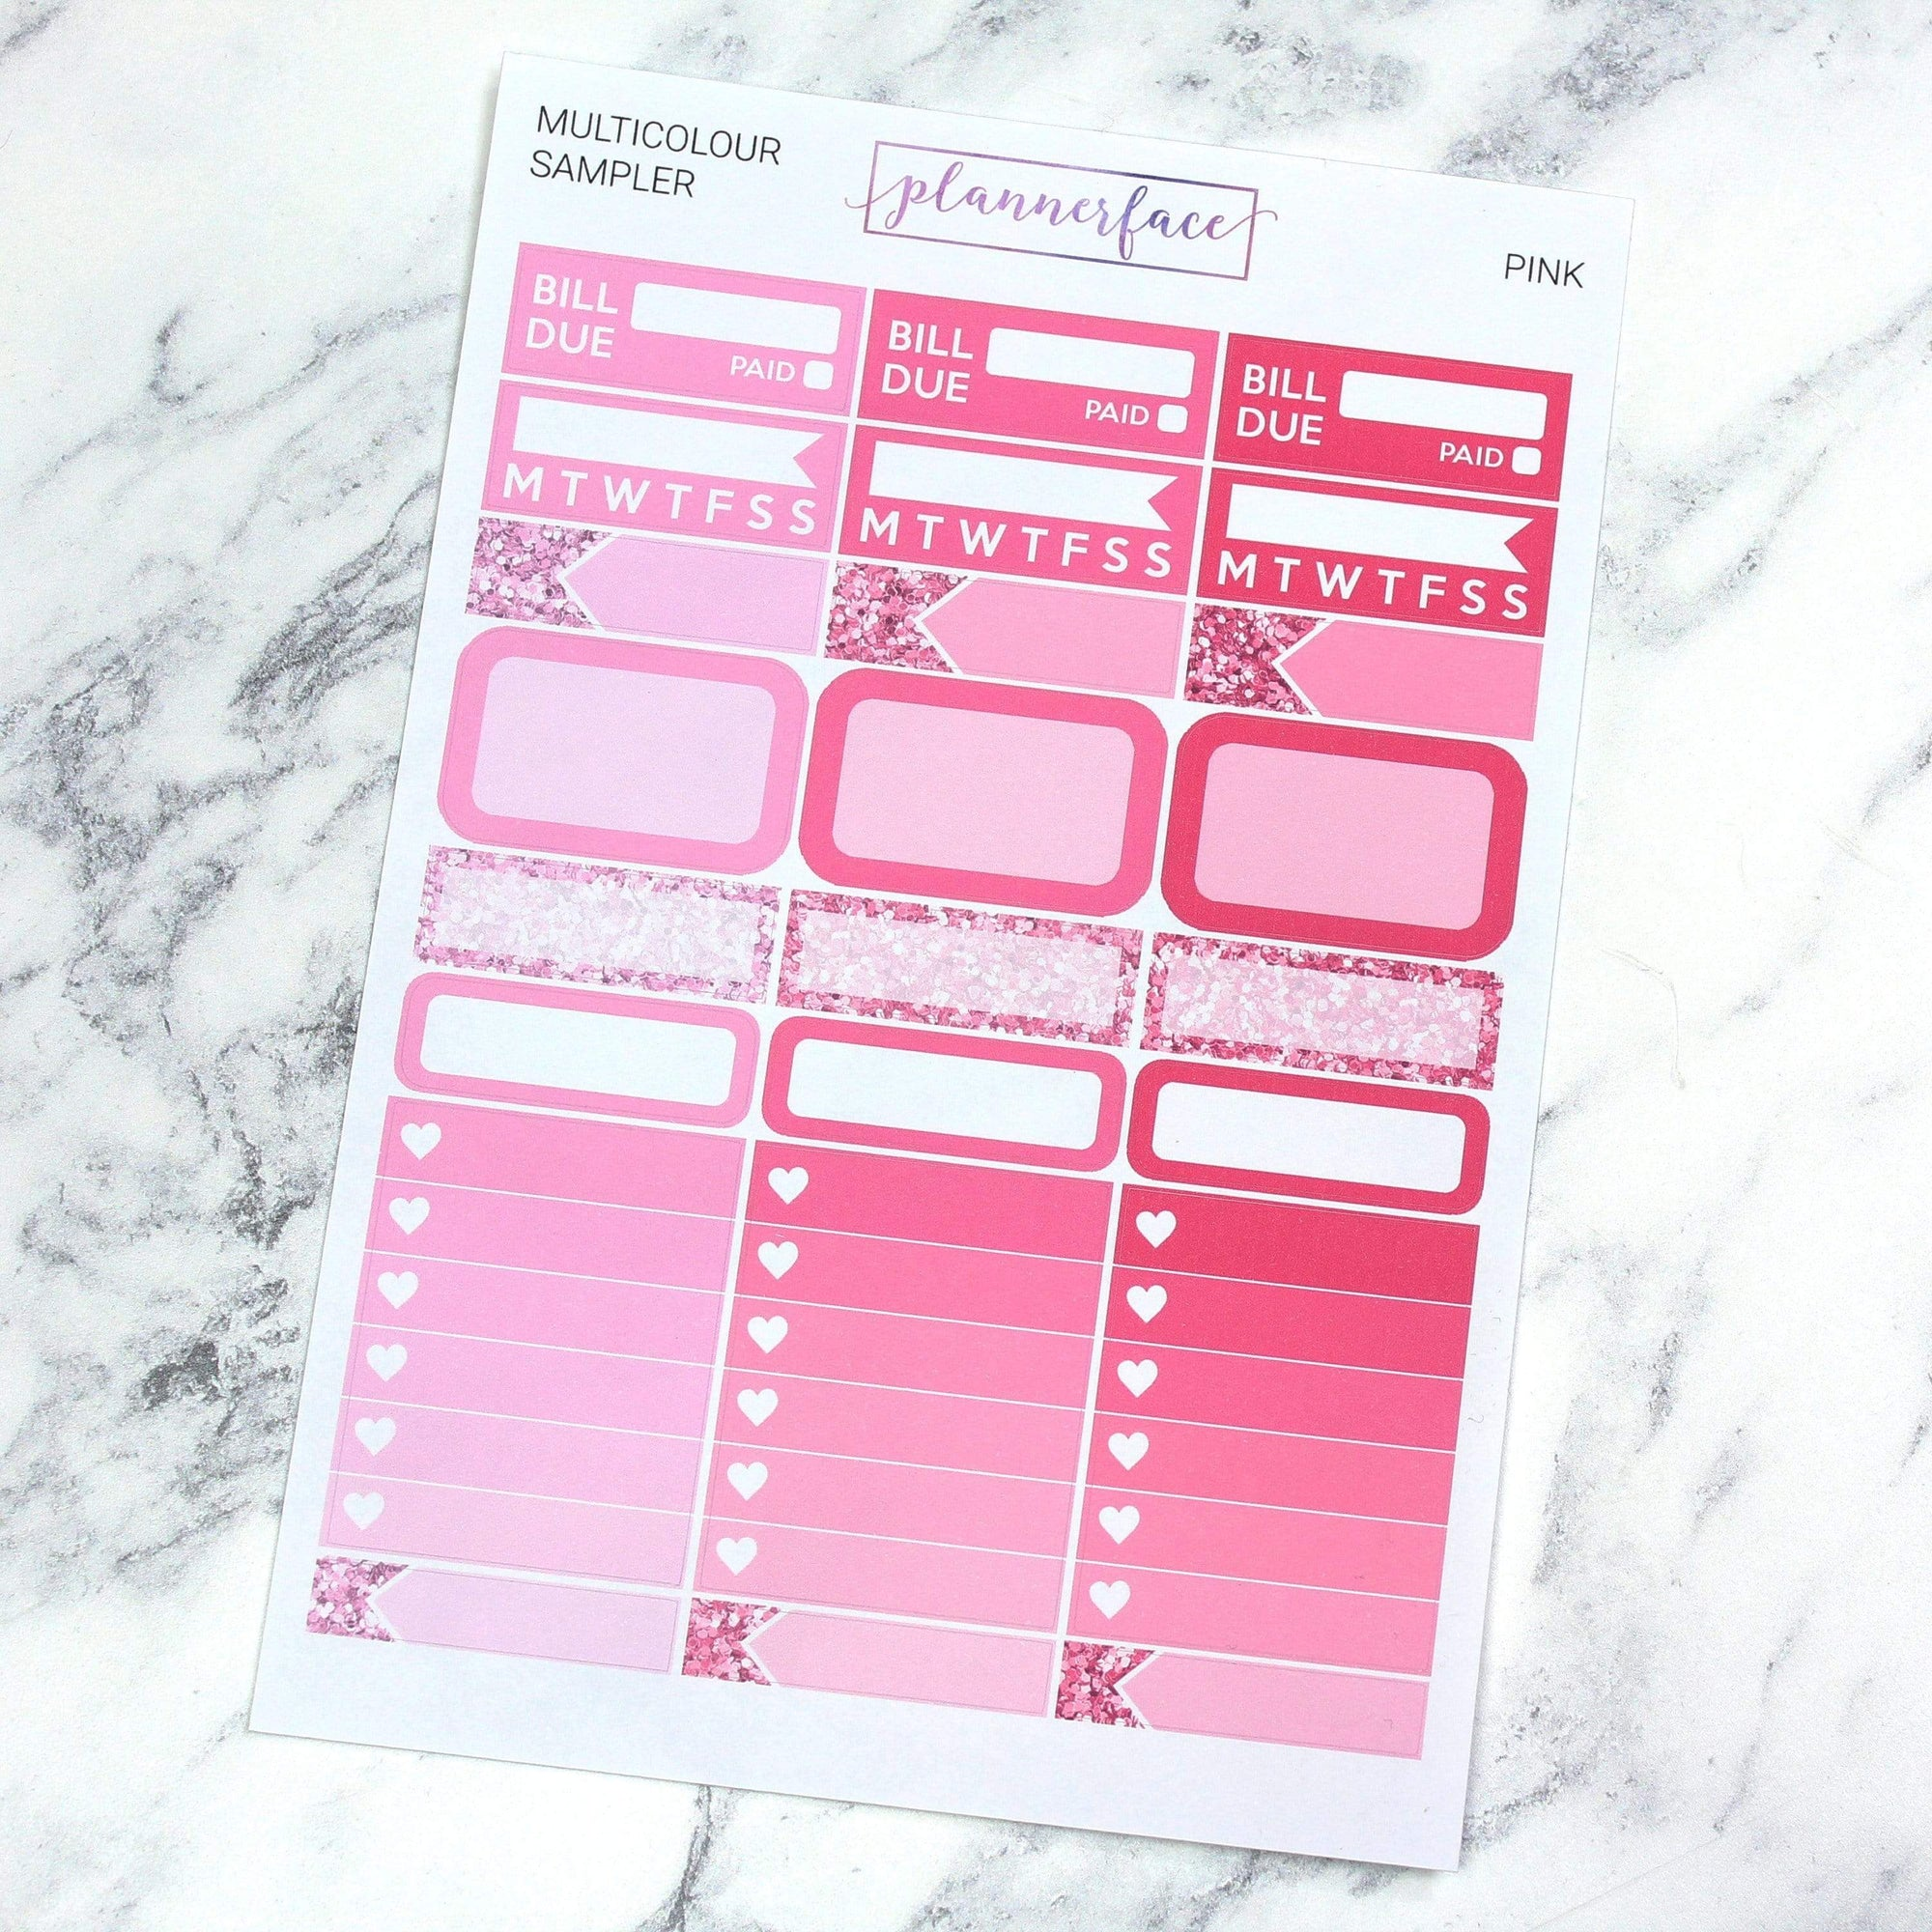 Plannerface Pink Multicolour Sampler Planner Stickers